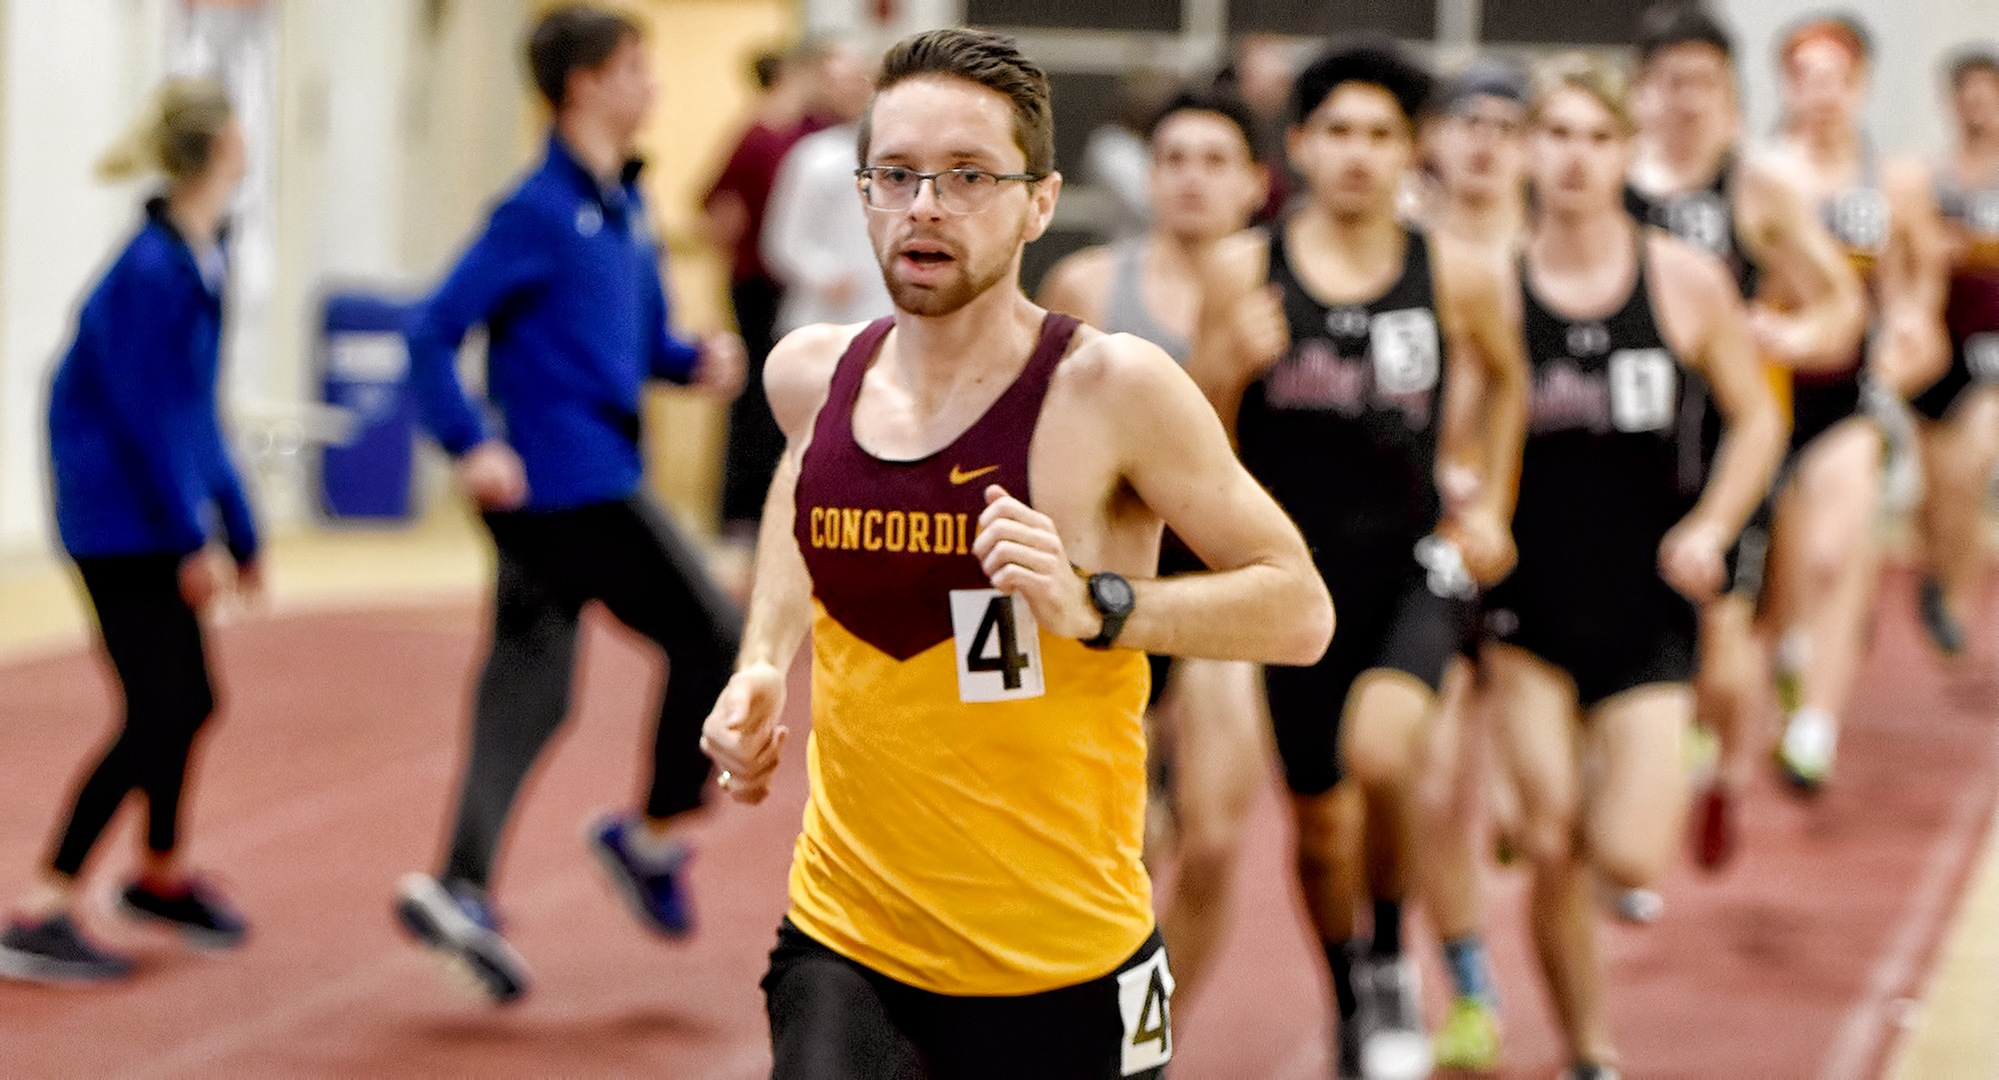 Senior Eric Wicklund won the 5000 meters at the St. John's Invite and has now won an event in three of the four meets this season.